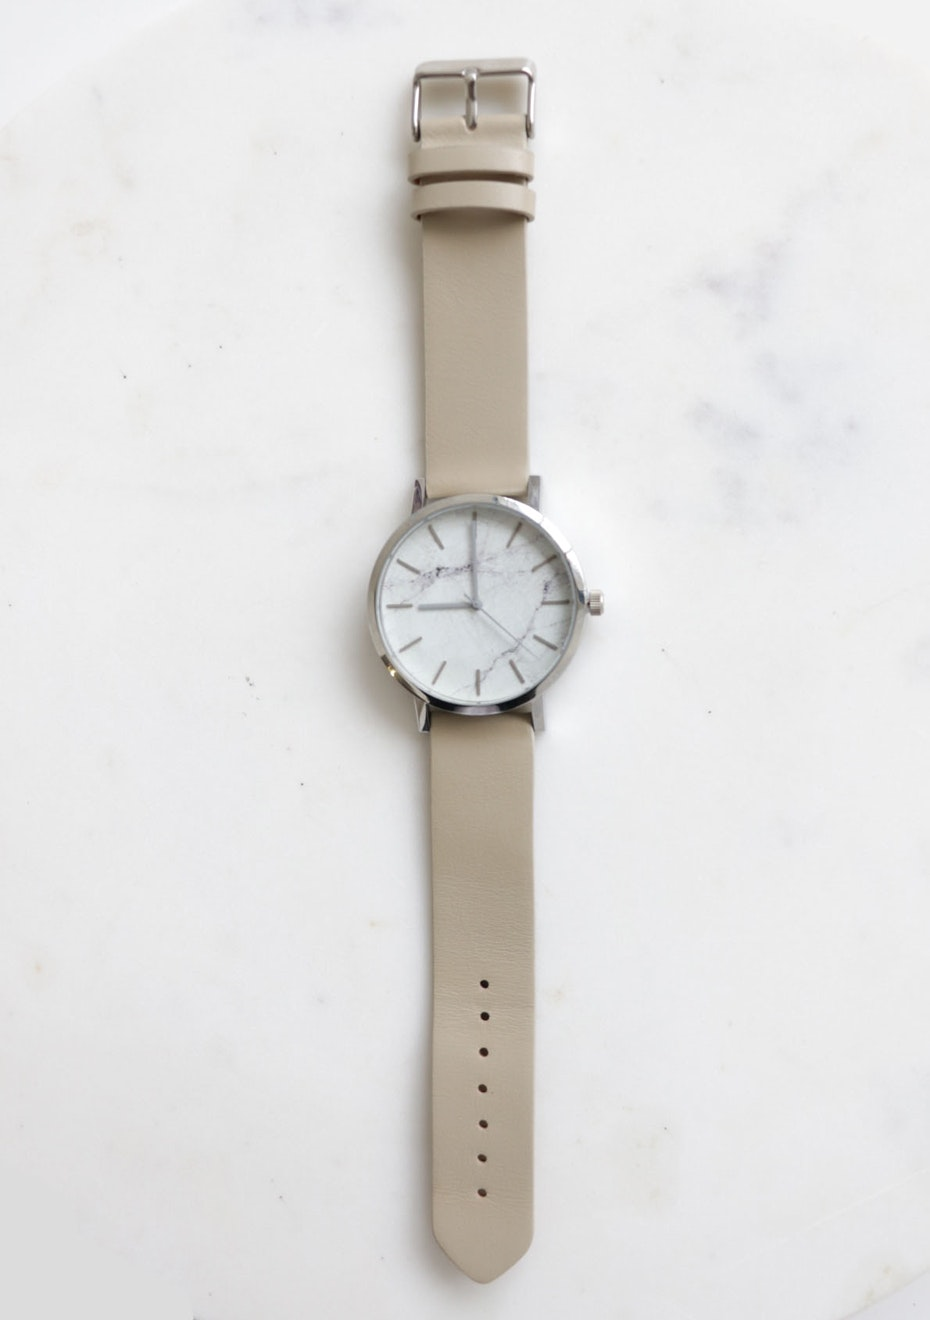 43MM Grey Marble Watch